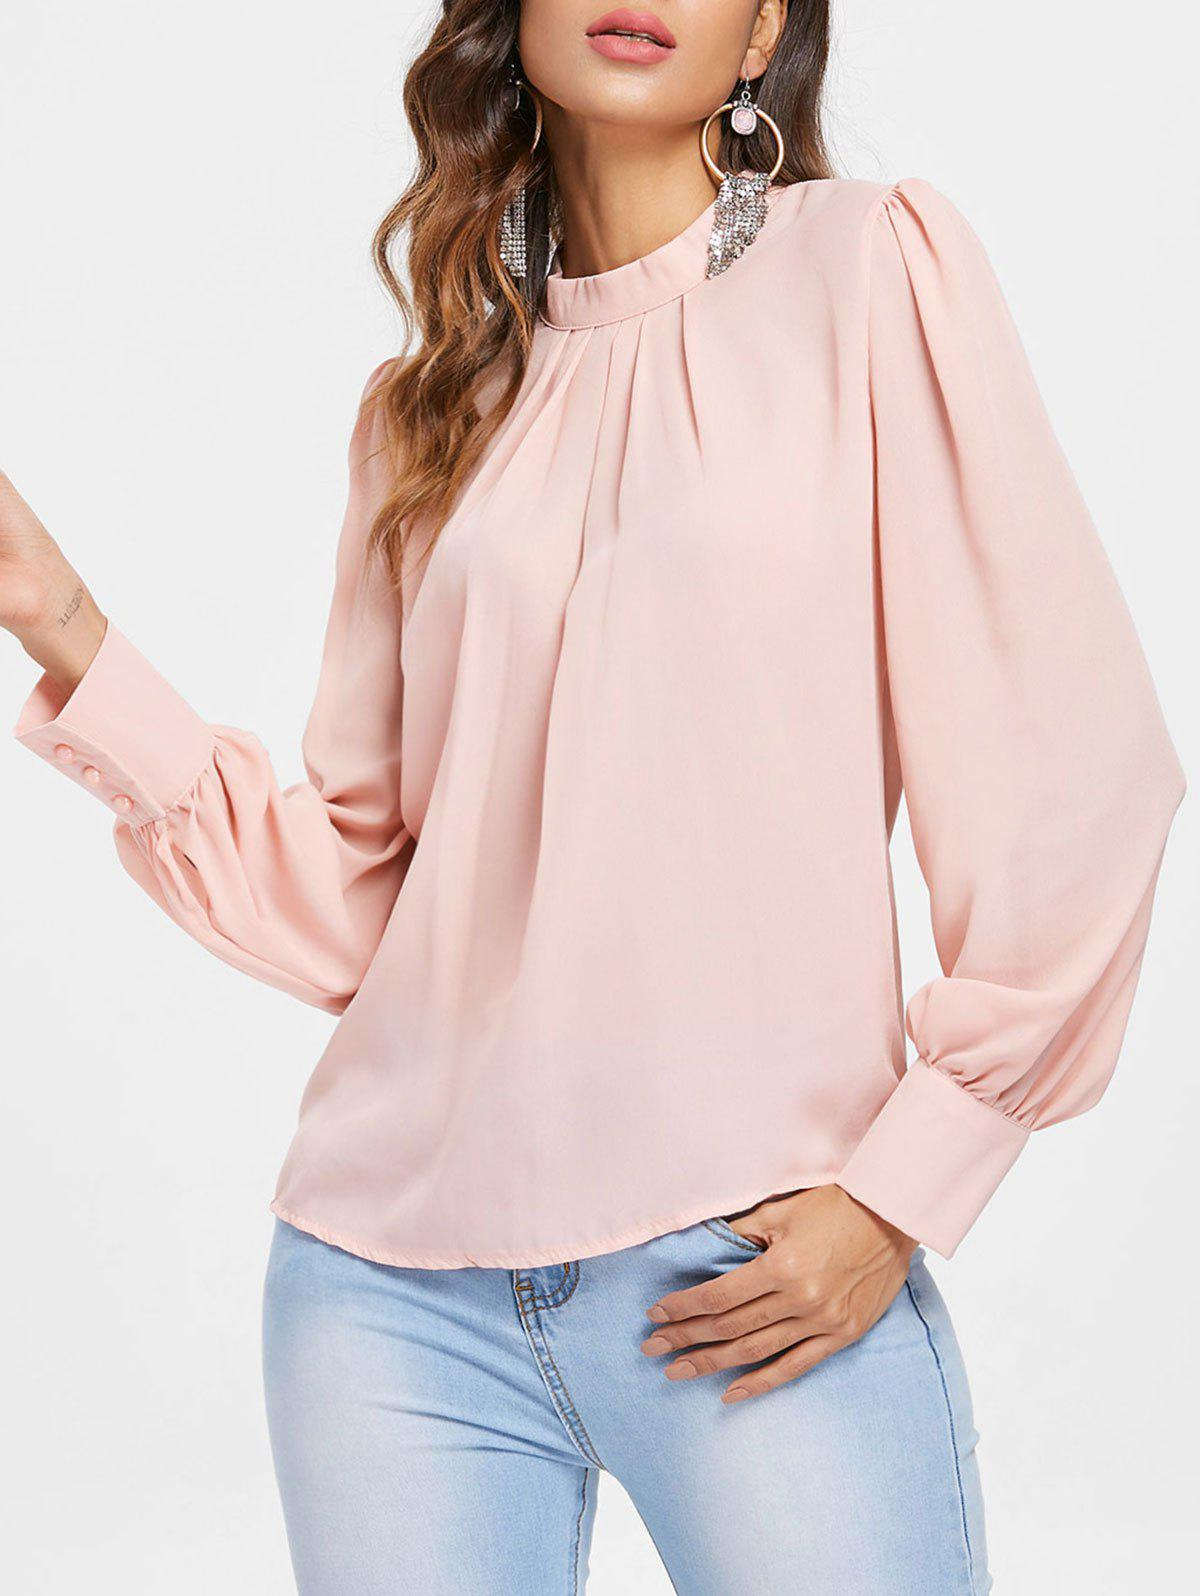 Unique Chiffon Top